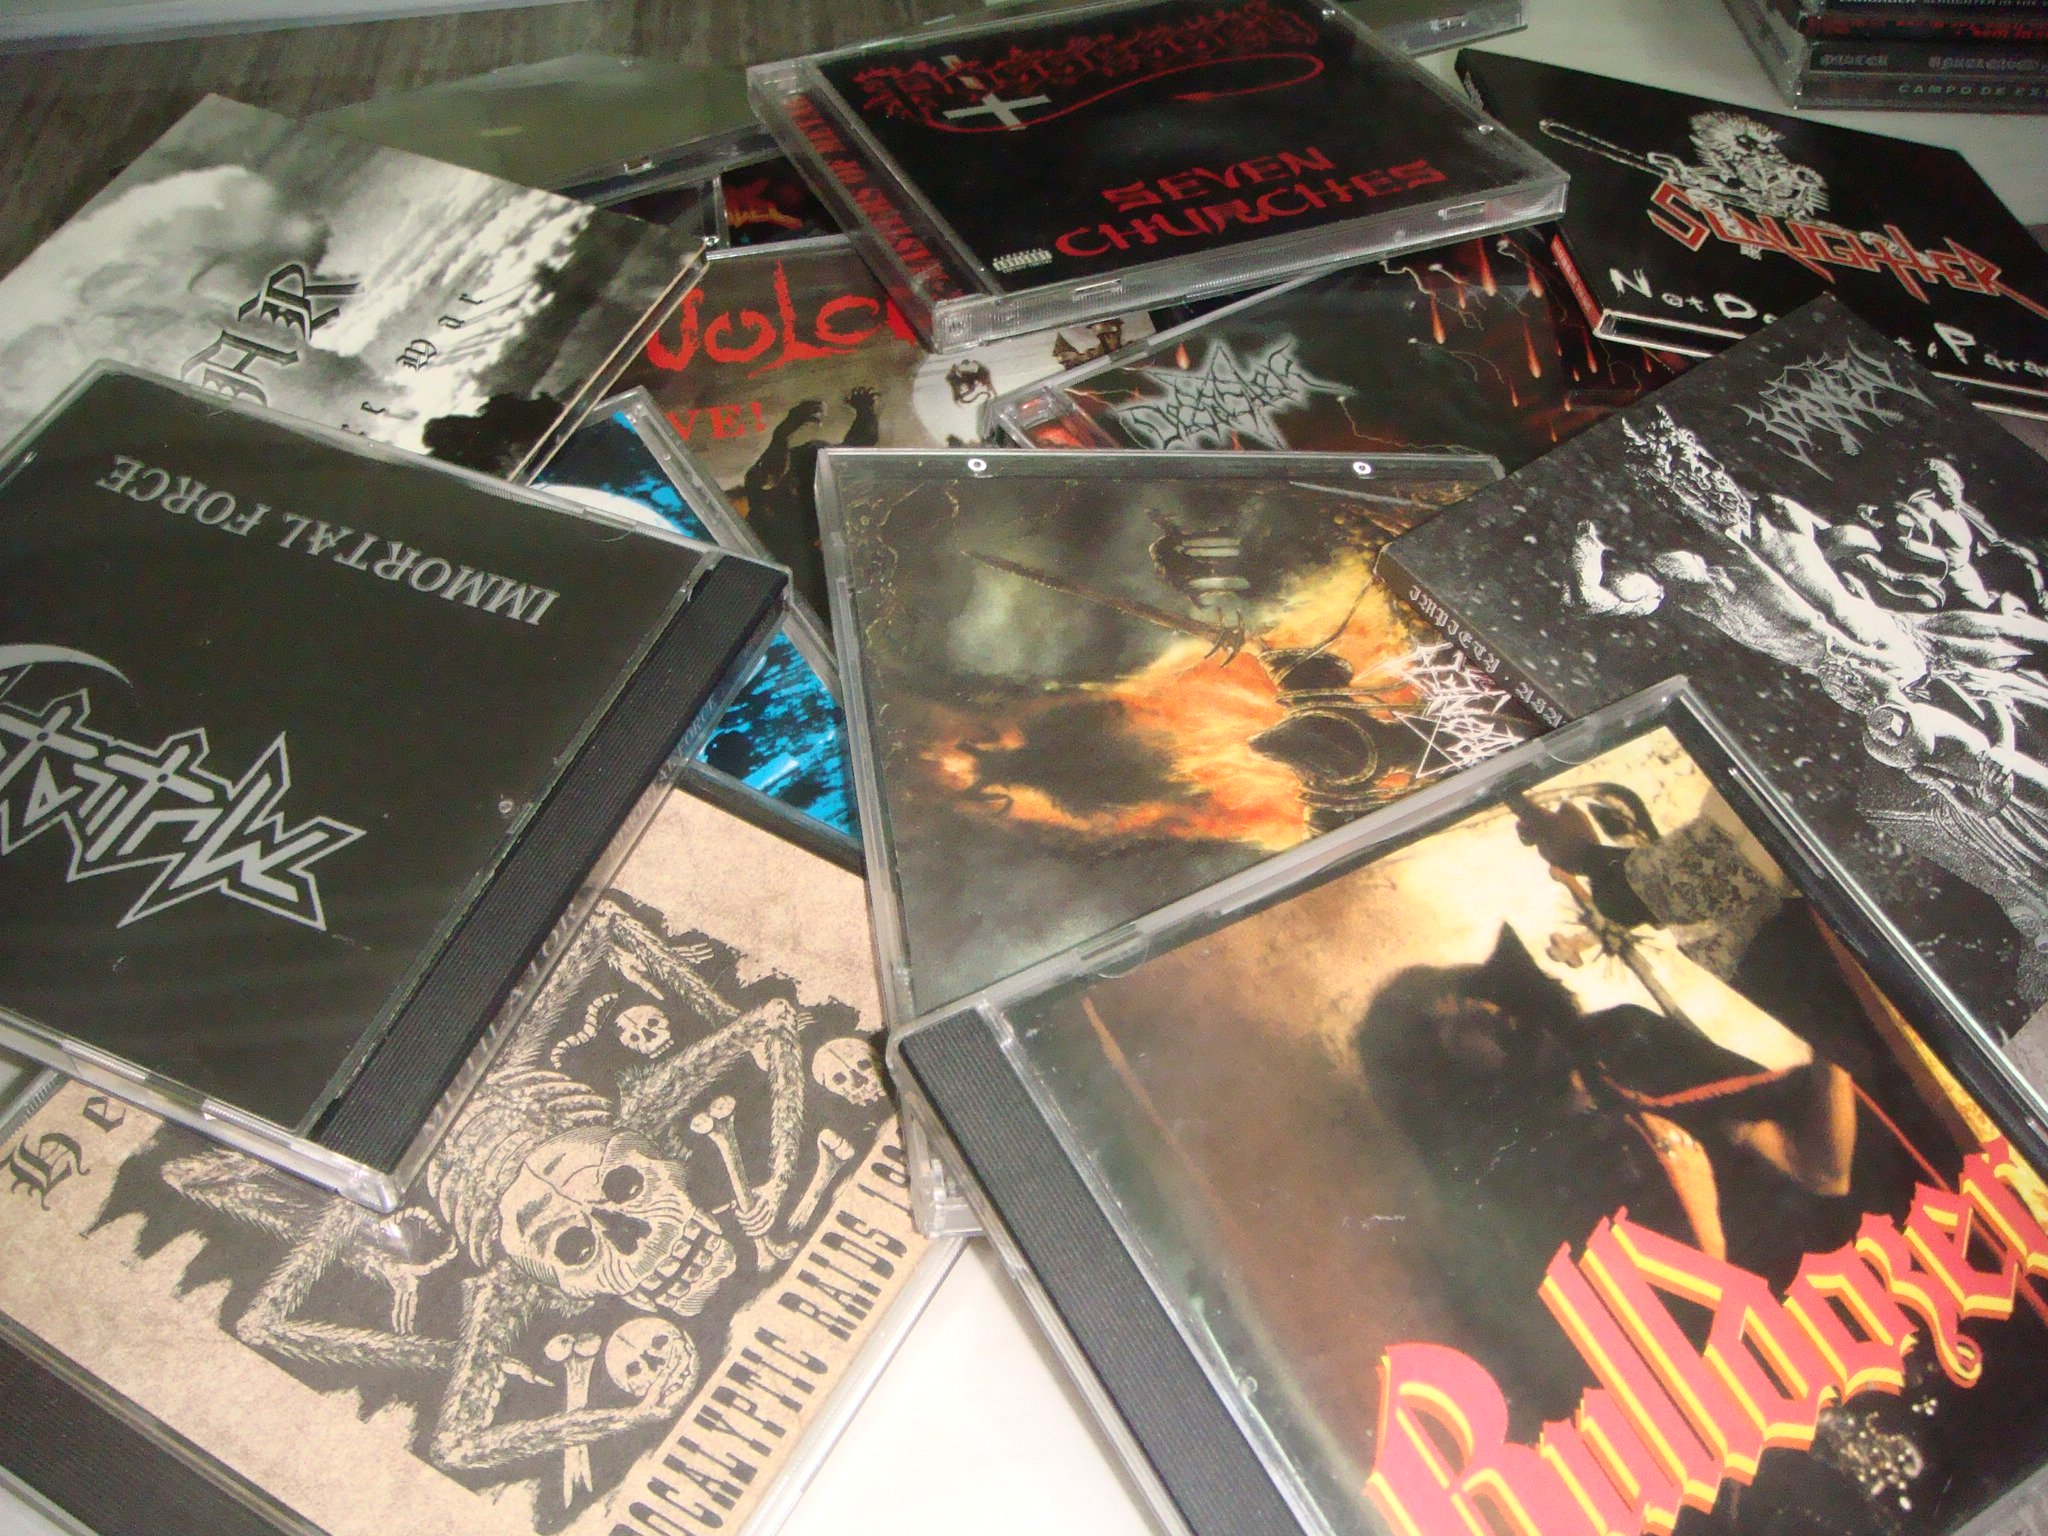 FOR SALE: Selling My Old Metal CDs Collection